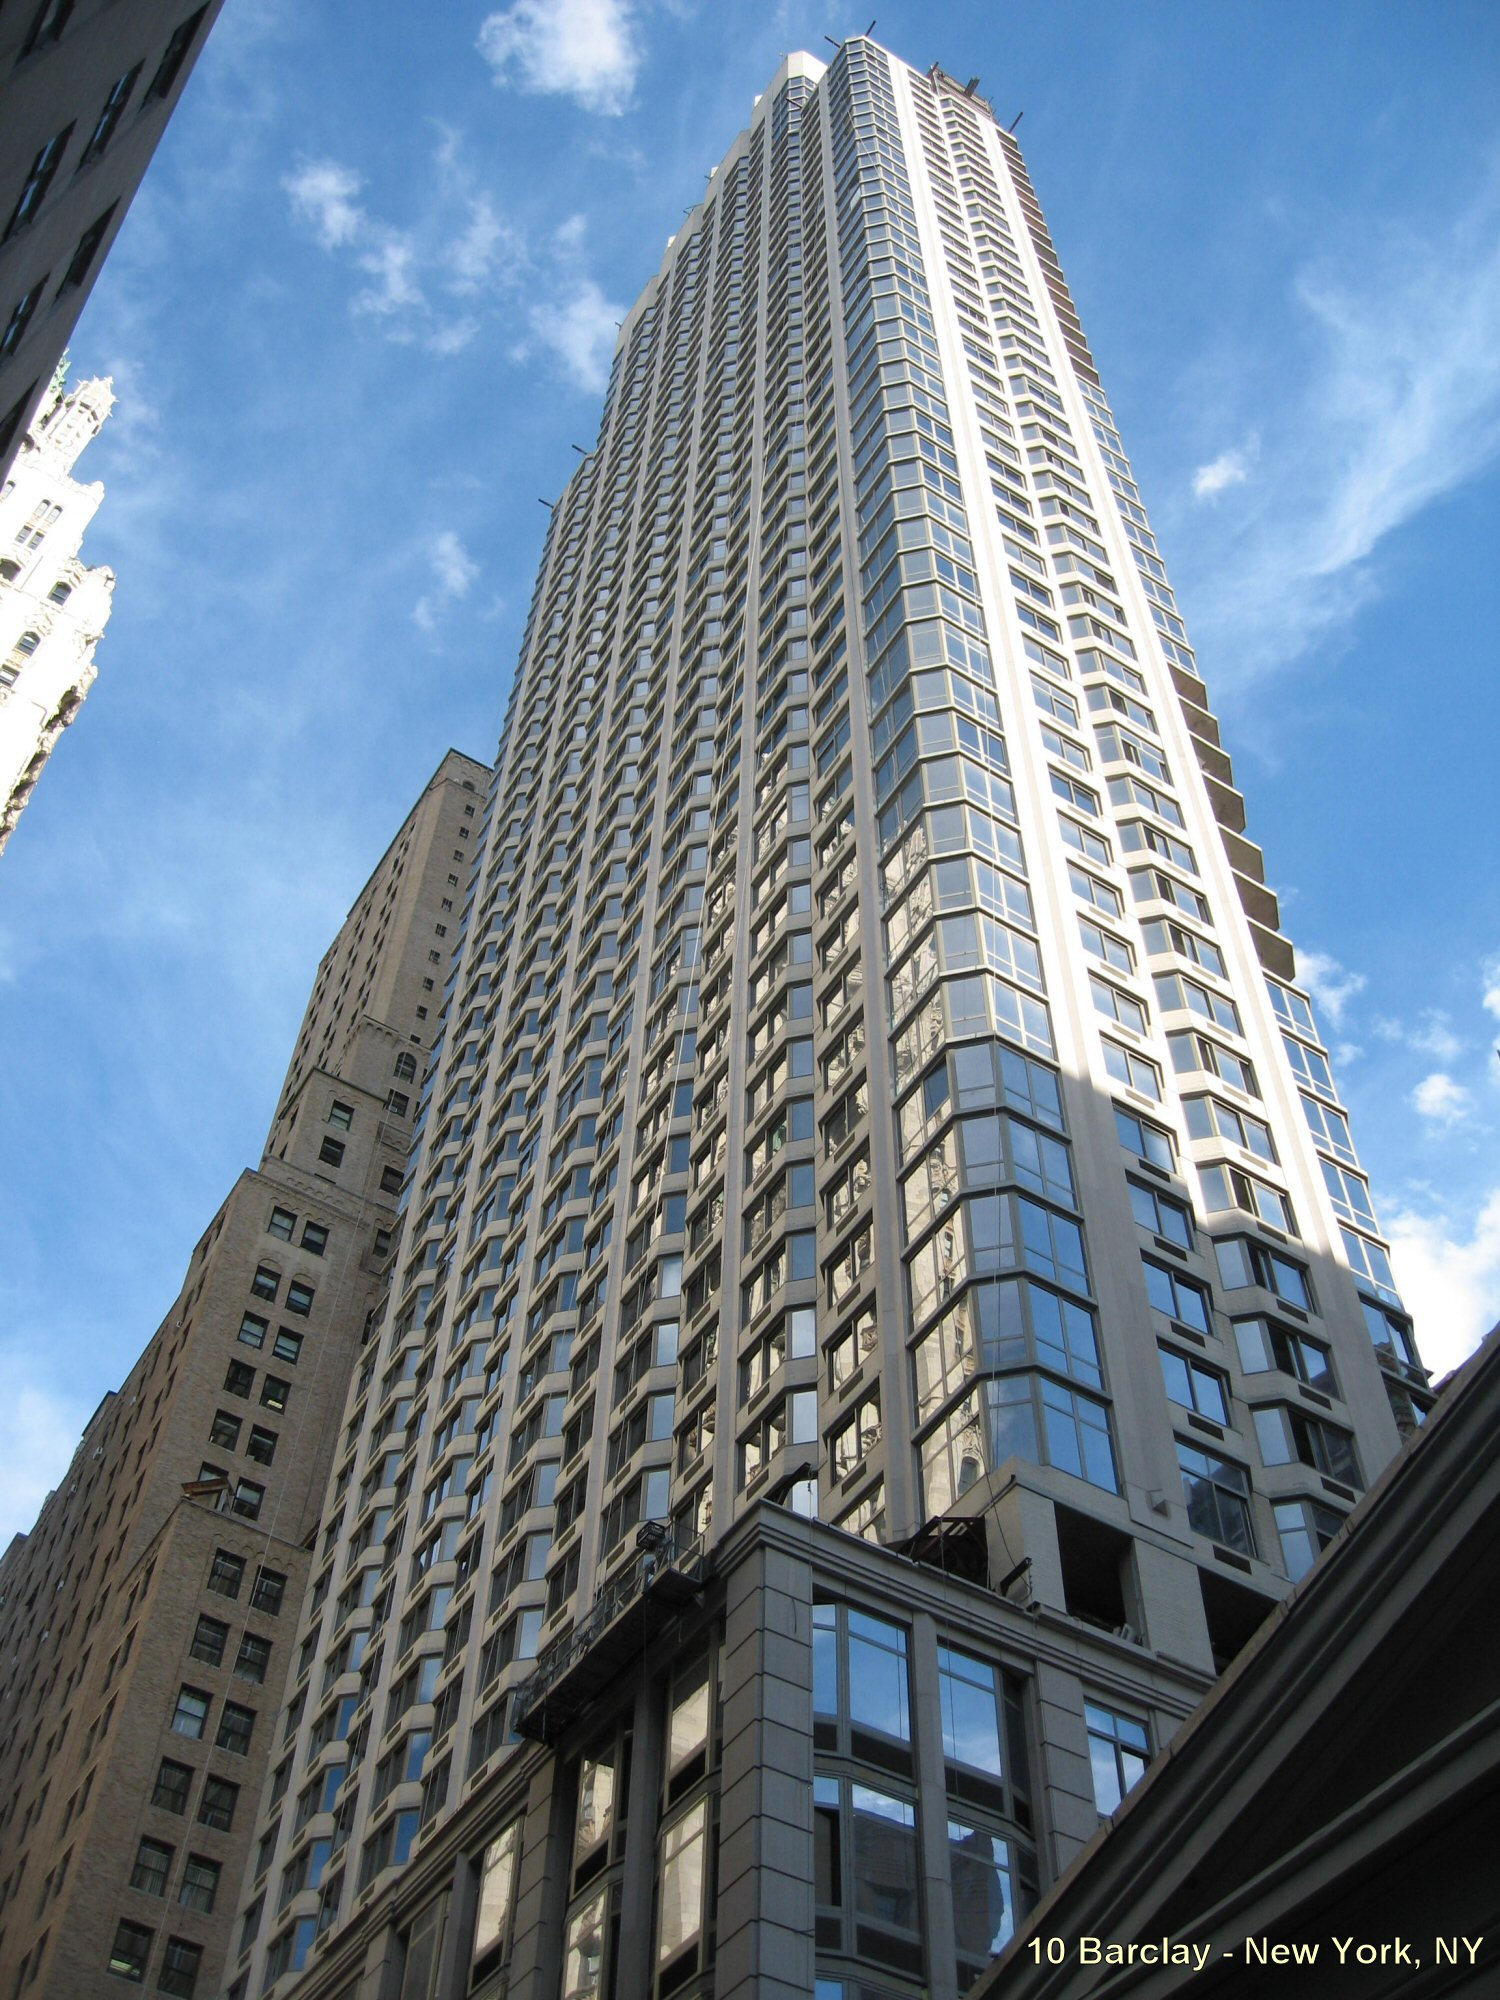 10 Barclay Tower NY 57 Stories of Lightweight Stone Panels